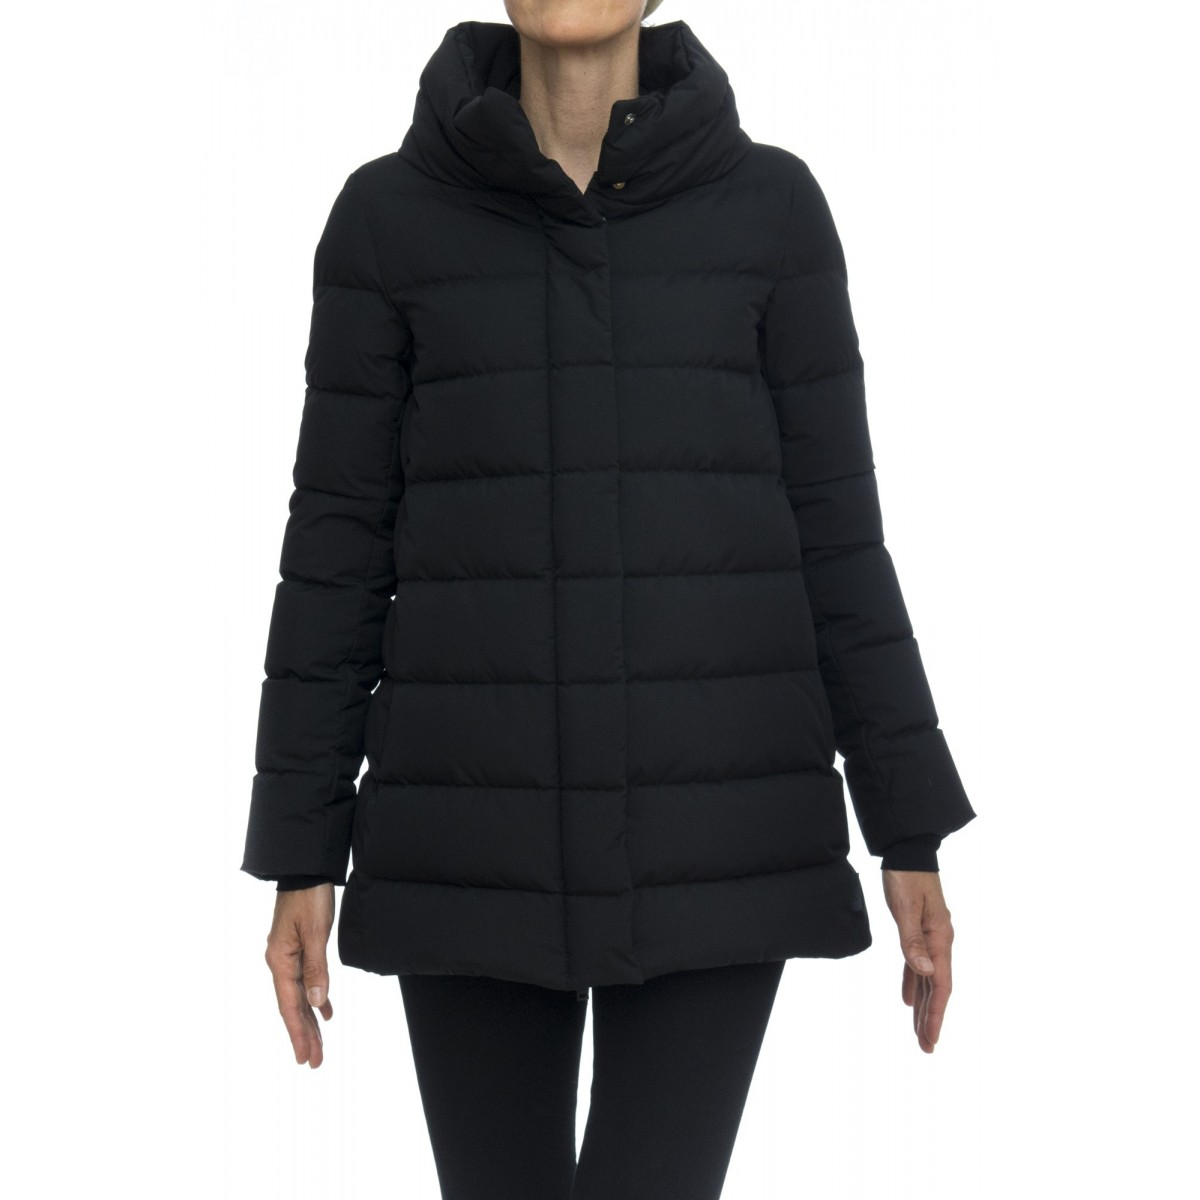 Down Jacket Woman - Pi050dl 11106